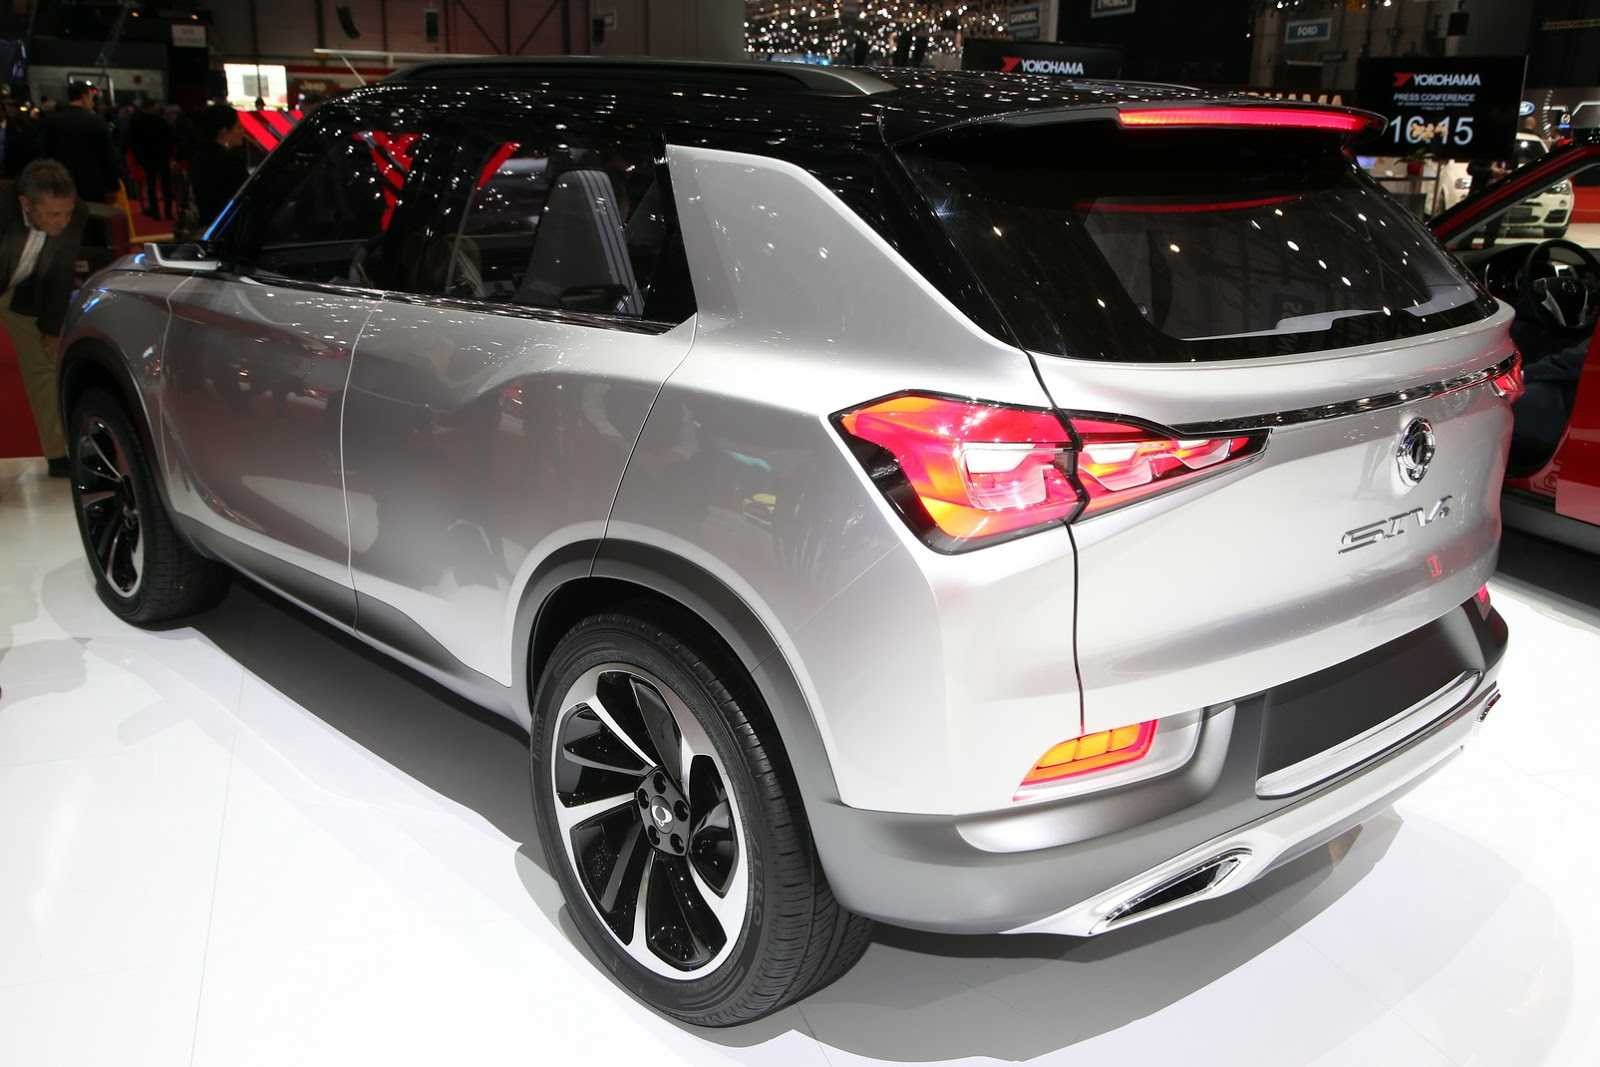 2019 SsangYong SIV 1 Concept photo - 1